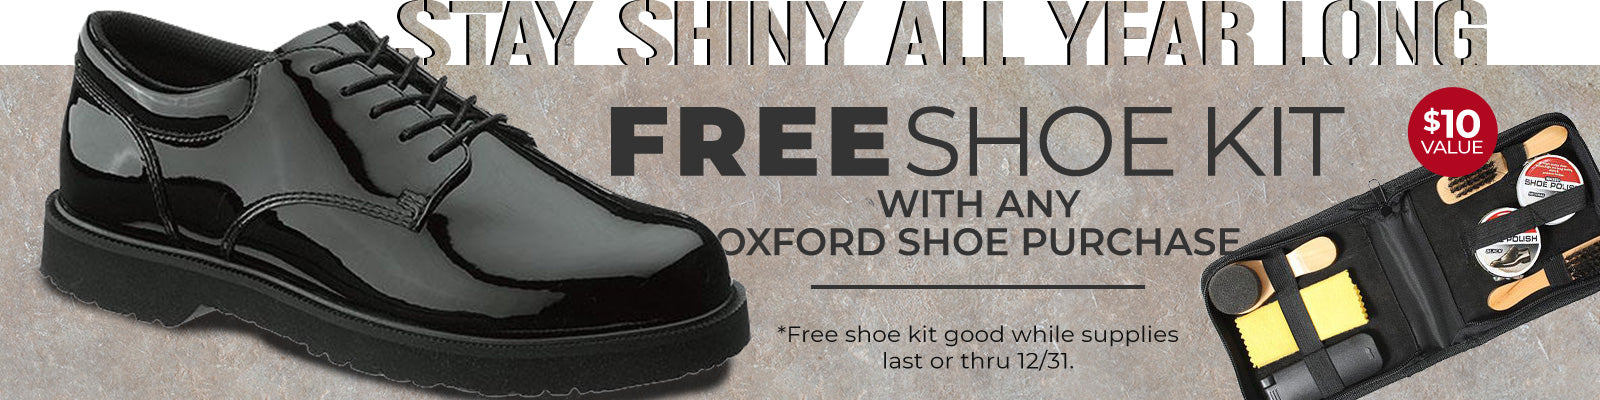 Free Shoe Kit with any Oxford Shoe purchase